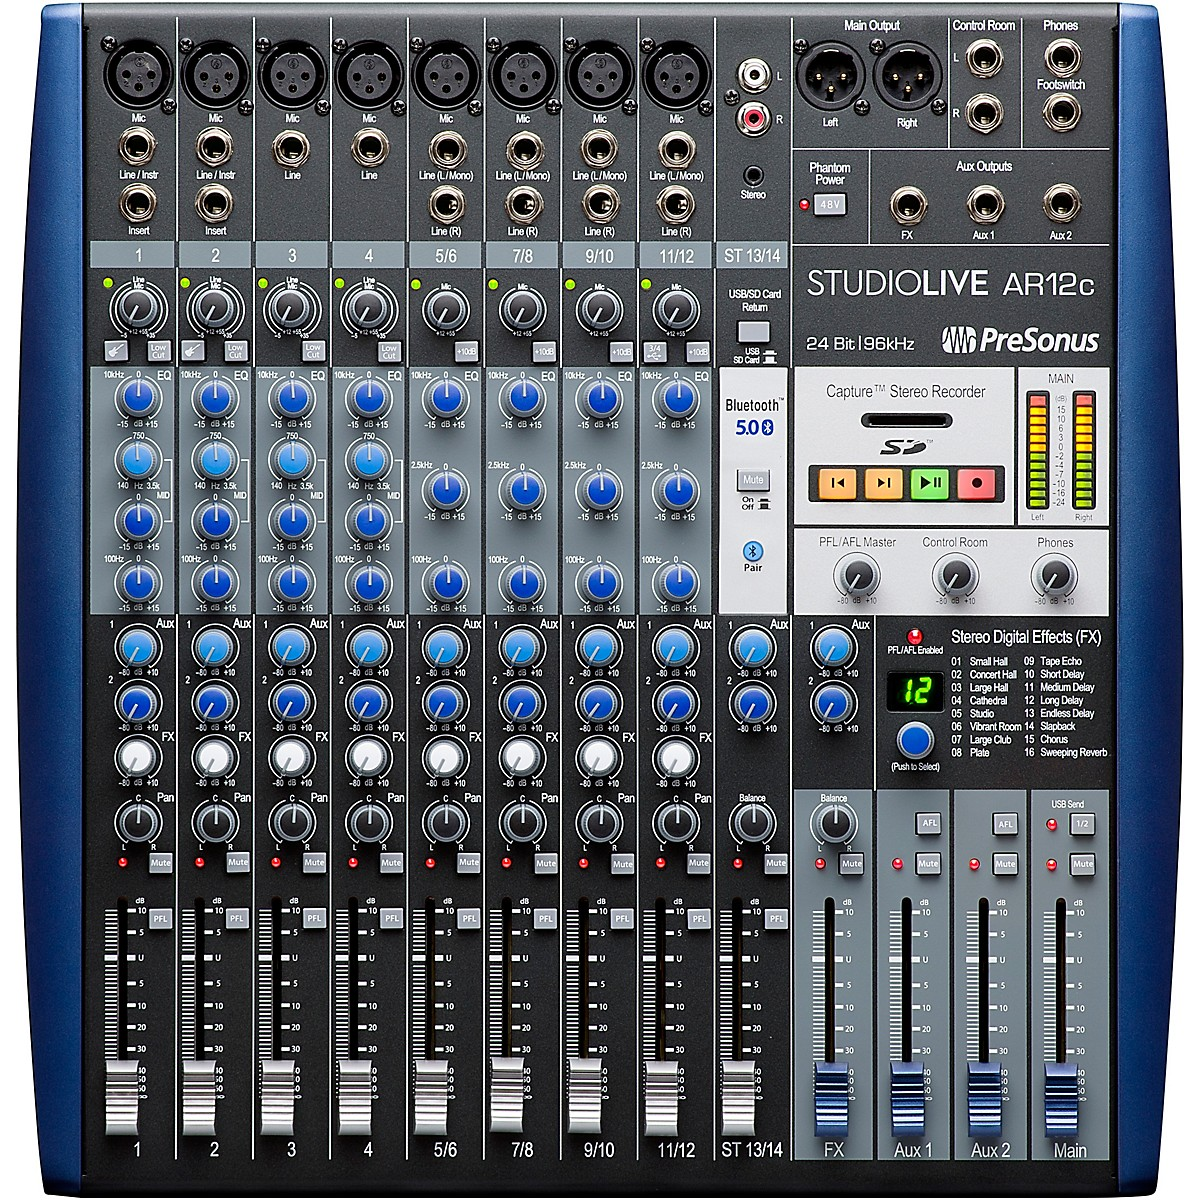 Presonus StudioLive AR12c 12-Channel Hybrid Digital/Analog Performance Mixer